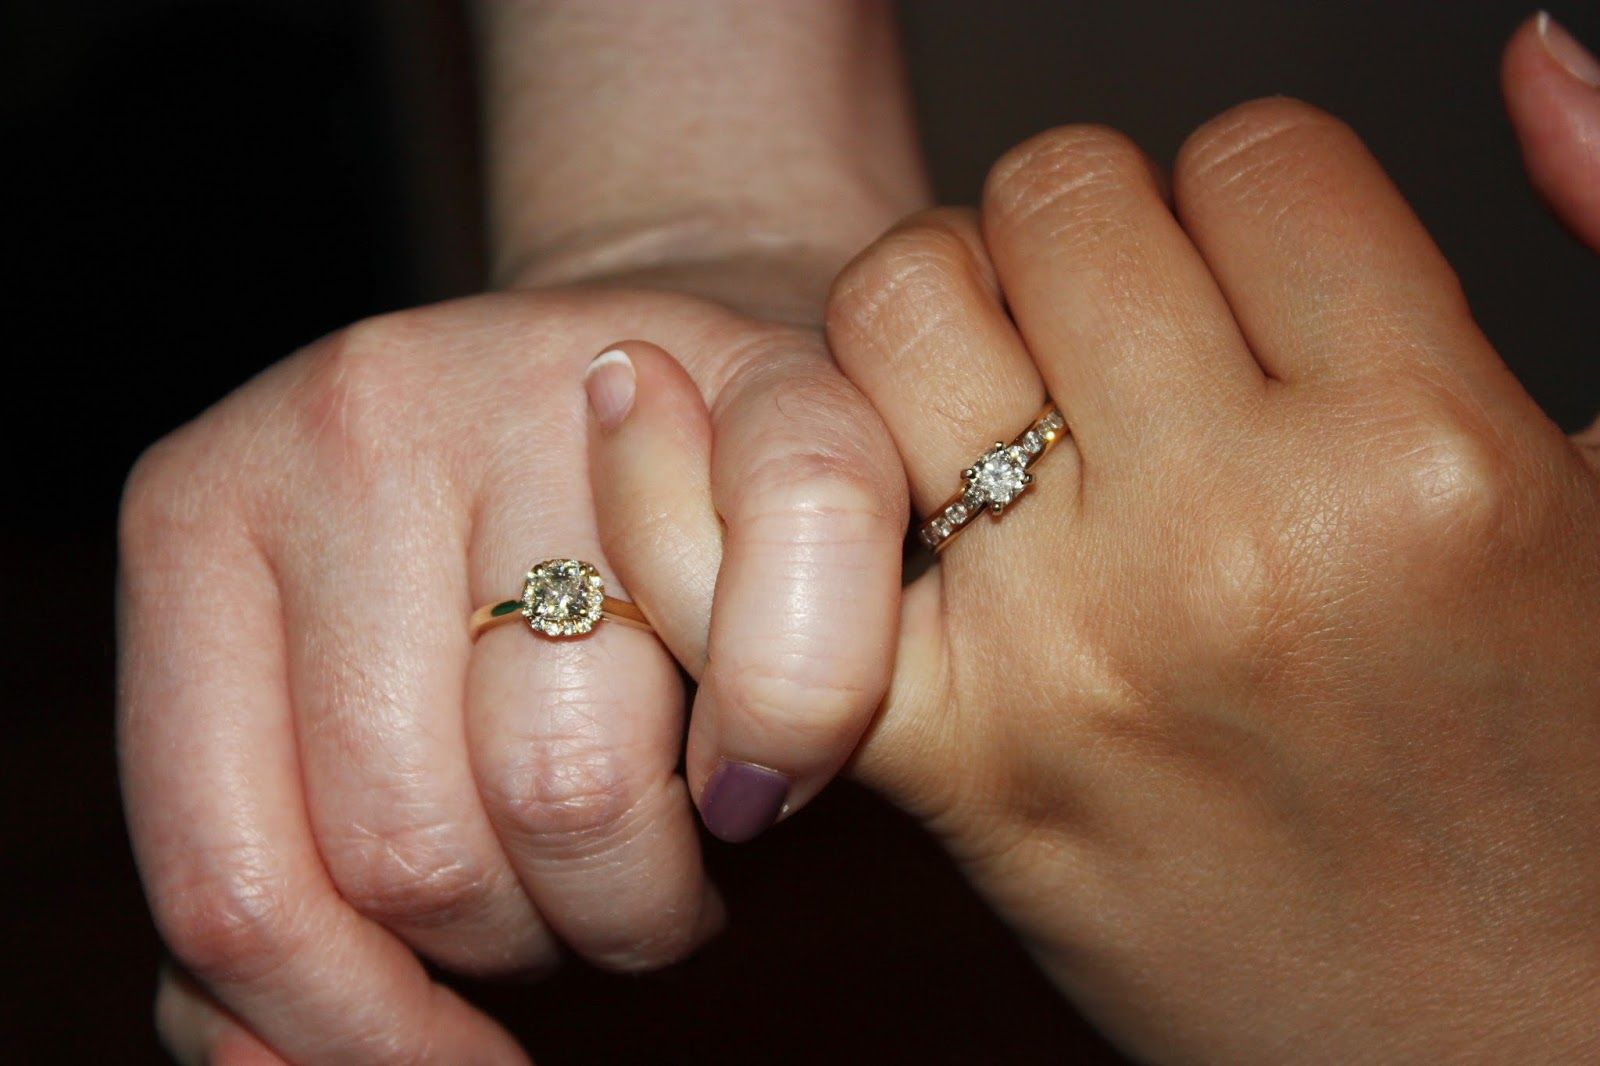 lesbian wedding bands Lesbian wedding Two Bride Engagement rings from Robert Lance Jewelers in Philadelphia on Jewelers Row